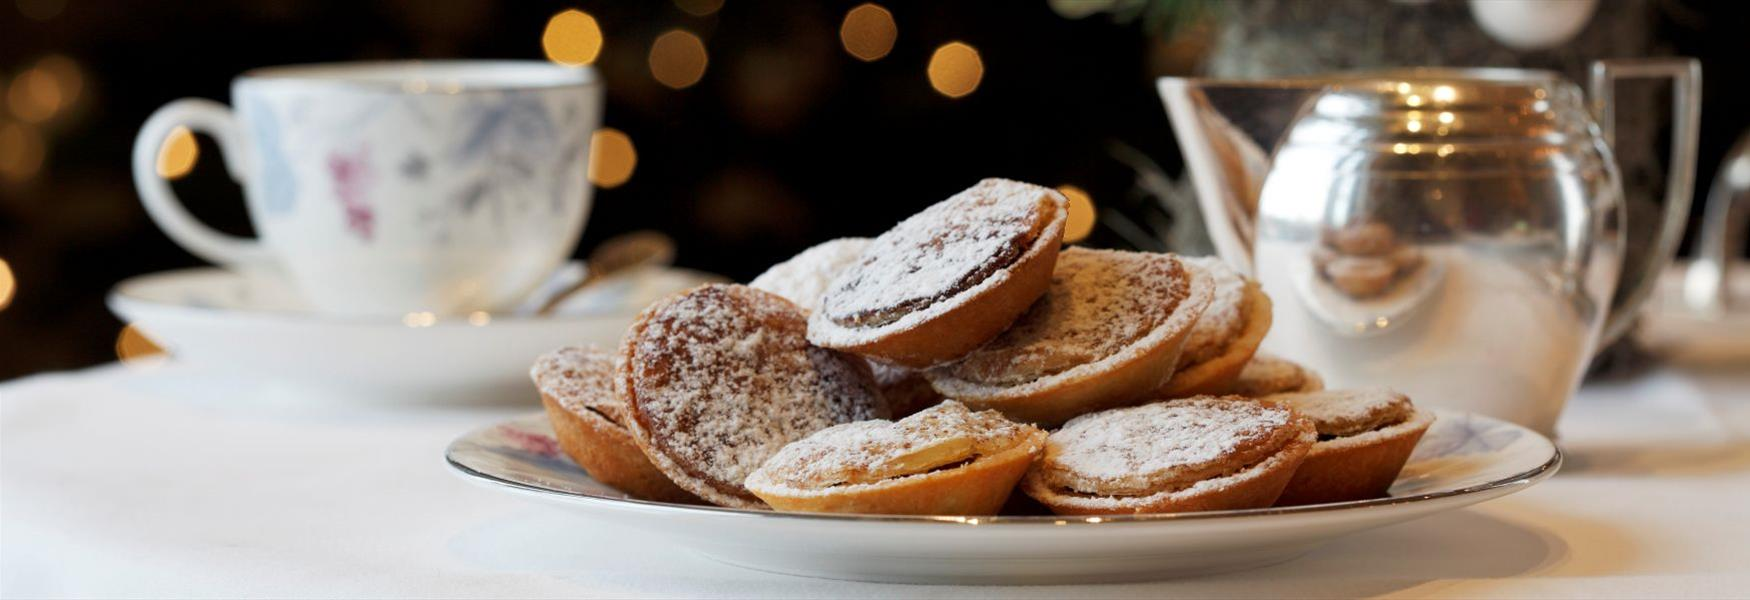 Mince pies at Coworth Park